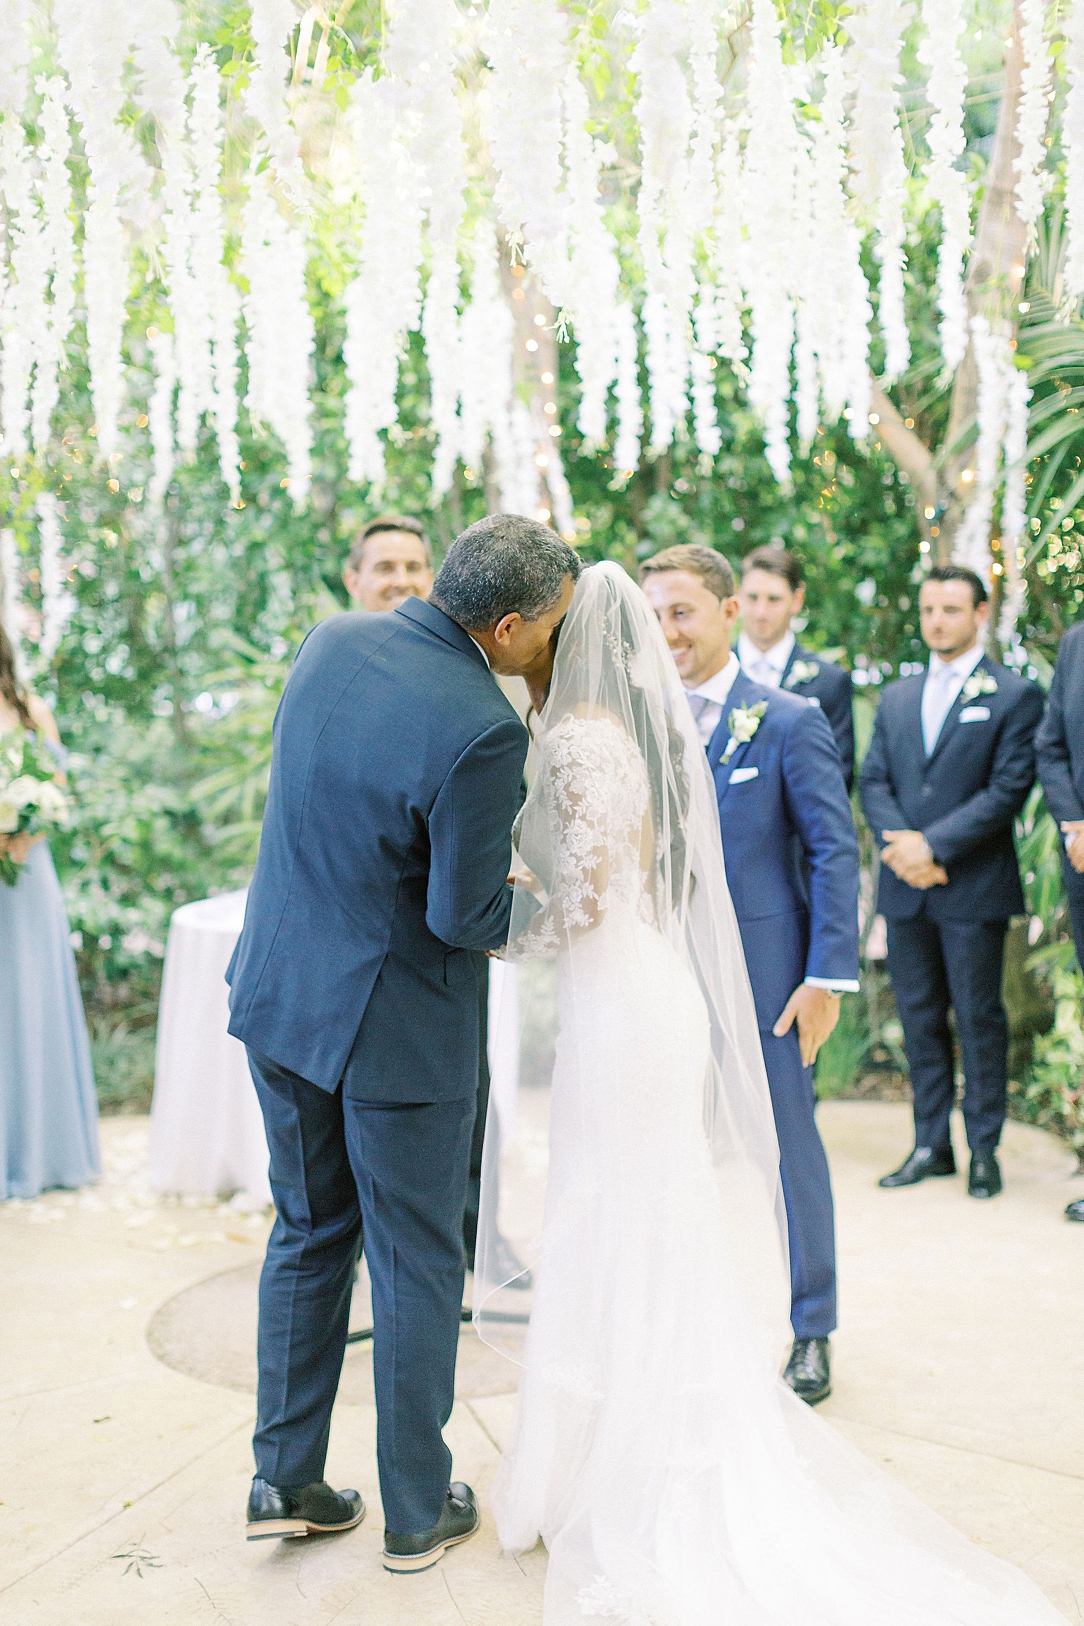 An Organic Floral Inspired Summer Wedding in the gardens of Hartley Botanica Somis by Wedding Photographer Madison Ellis (66)